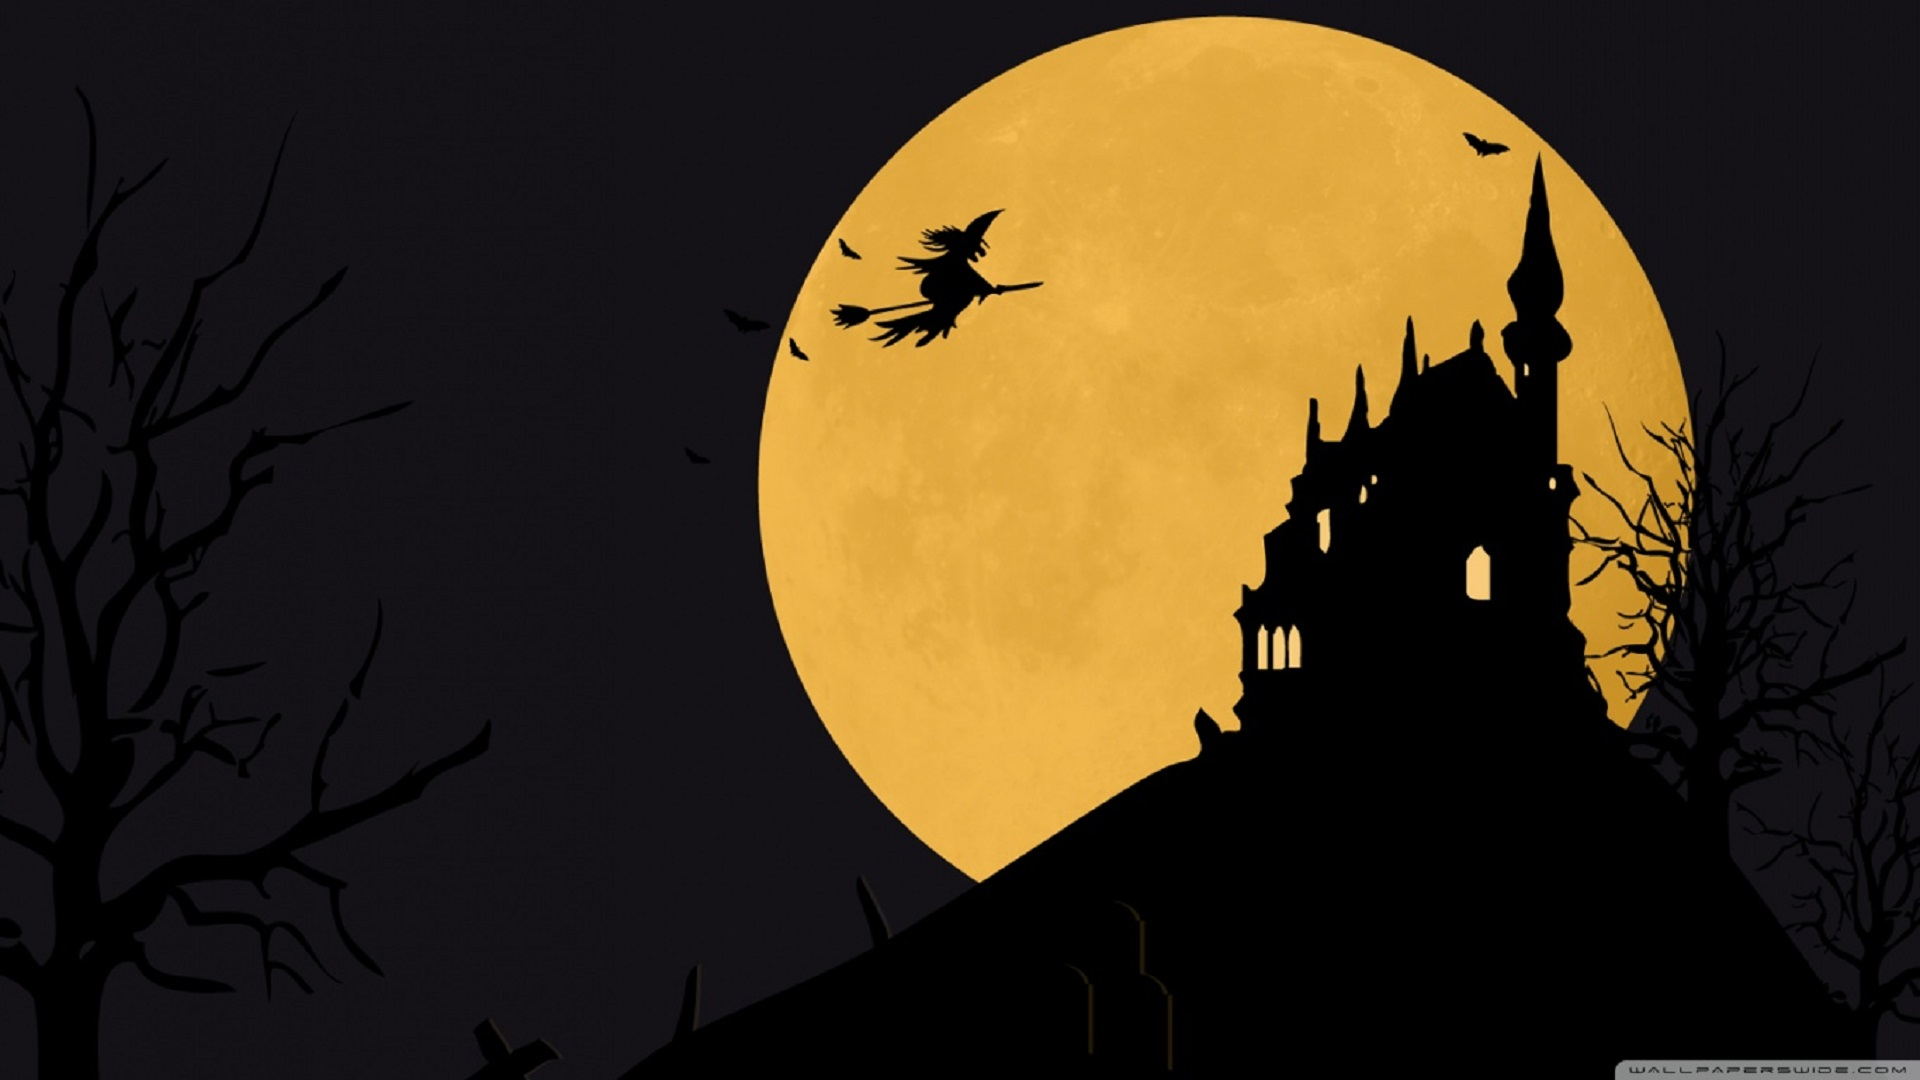 stunning hd wallpapers for your desktop 56 happy halloween edition - Desktop Wallpaper Halloween